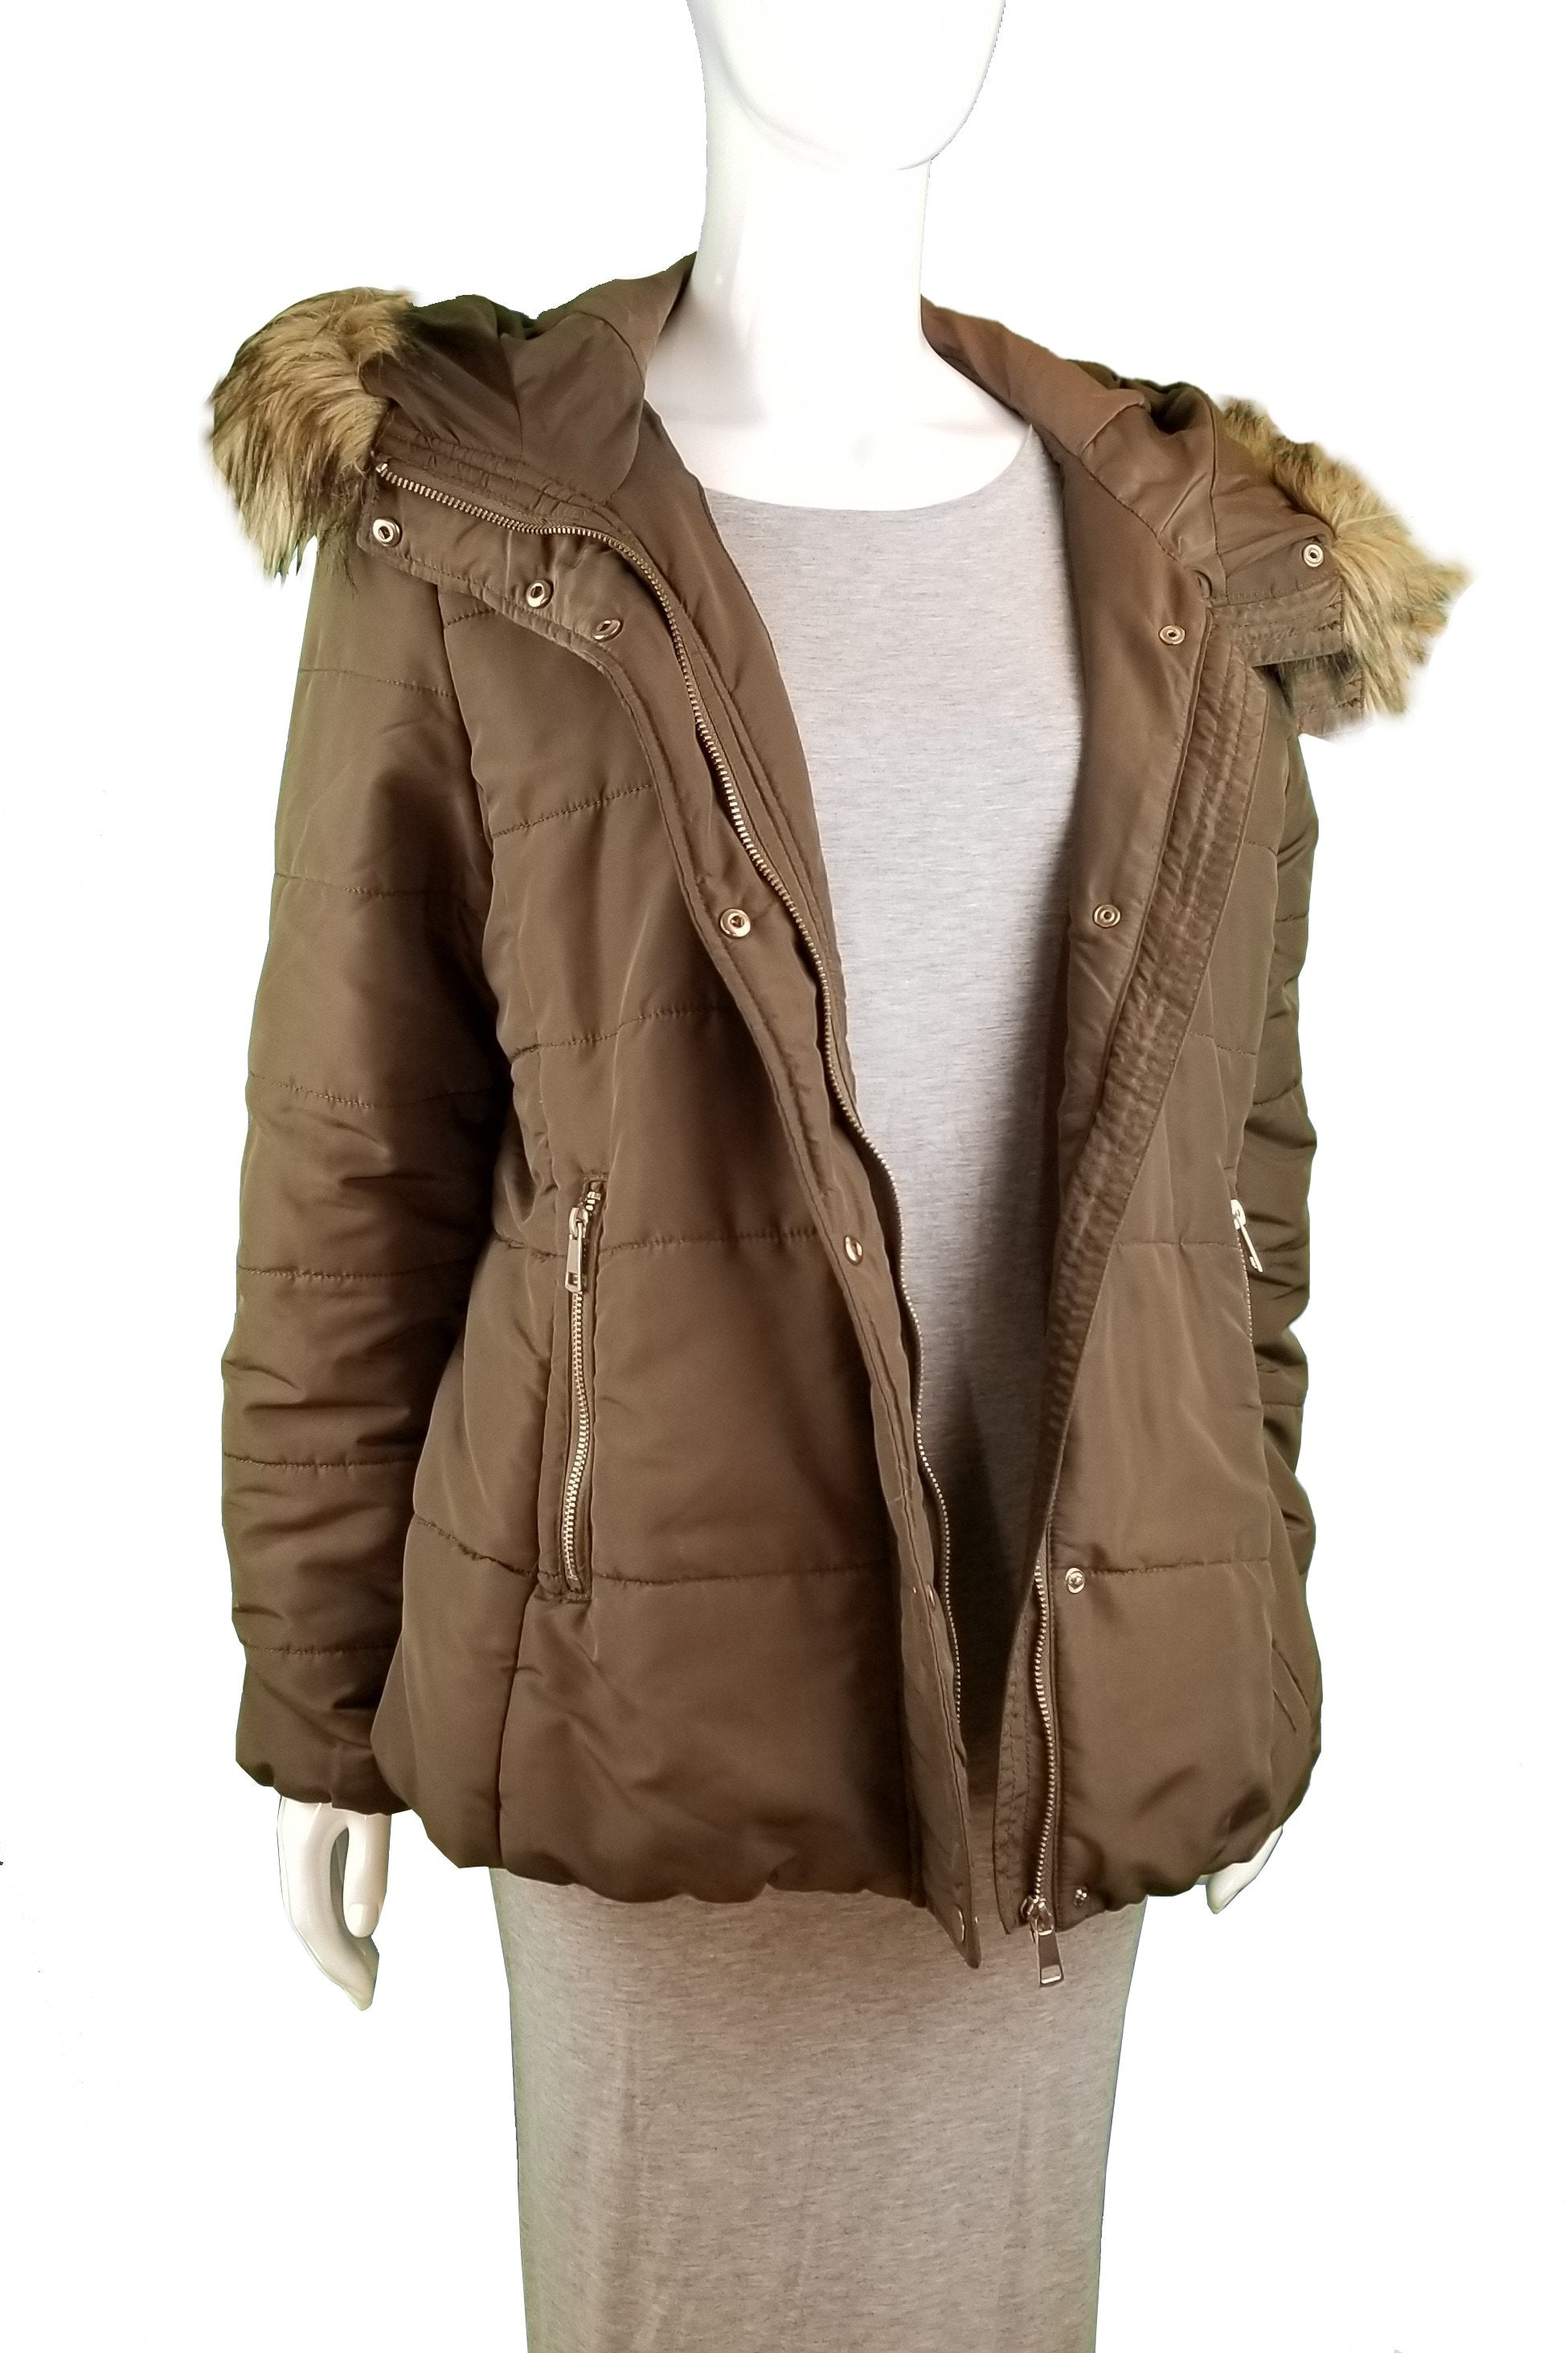 H&M Hooded Jacket, Warm hooded jacket. Signs of wearing at buttons and zipper, Green, 100% Polyester, women's Jackets & Coats, women's Green Jackets & Coats, H&M women's Jackets & Coats, women's winter jacket, women's warm jacket